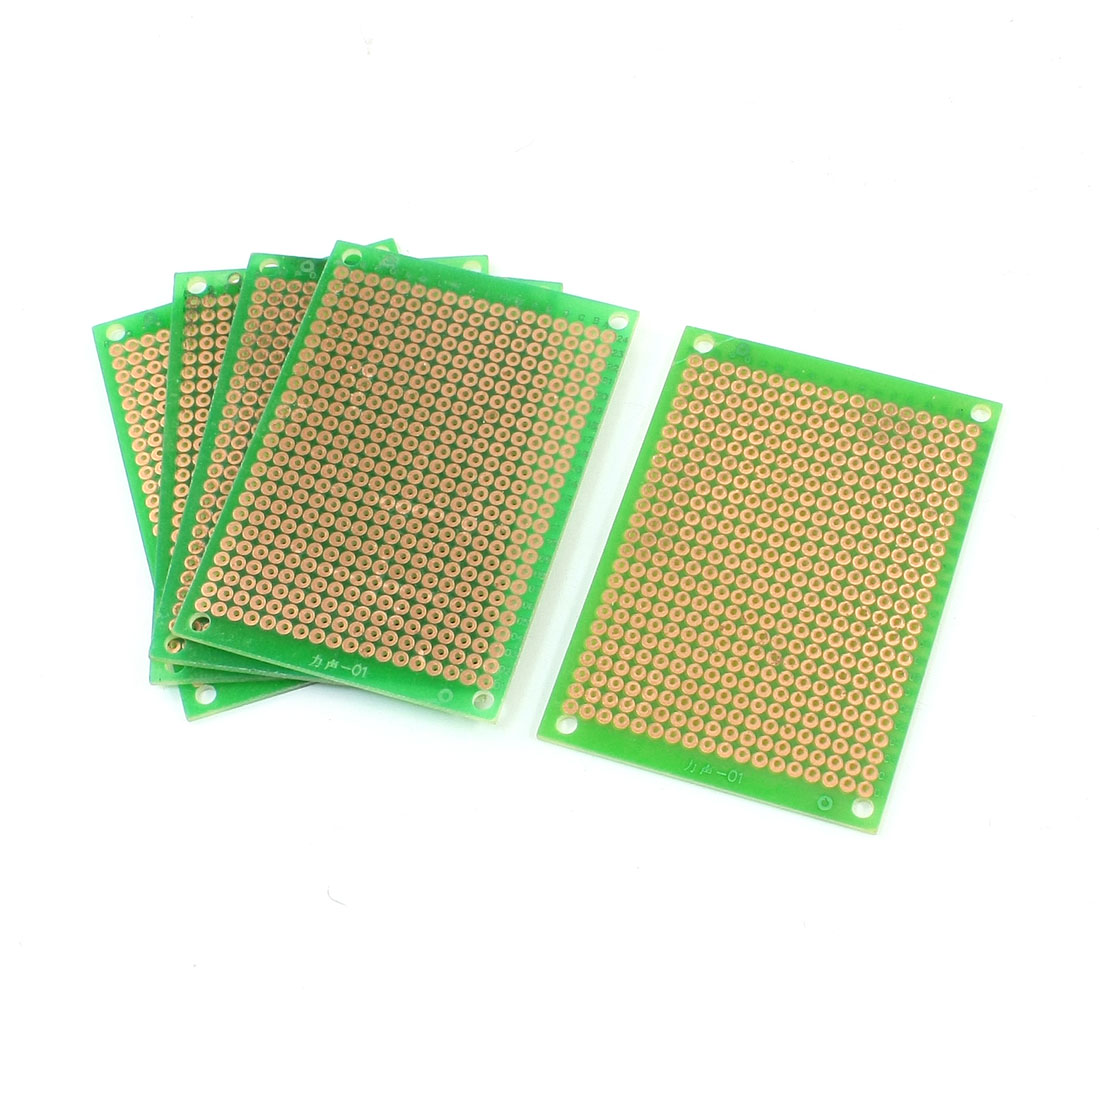 5cm x 7cm Panel Single Side PCB Circuit Board Green 5 Pcs